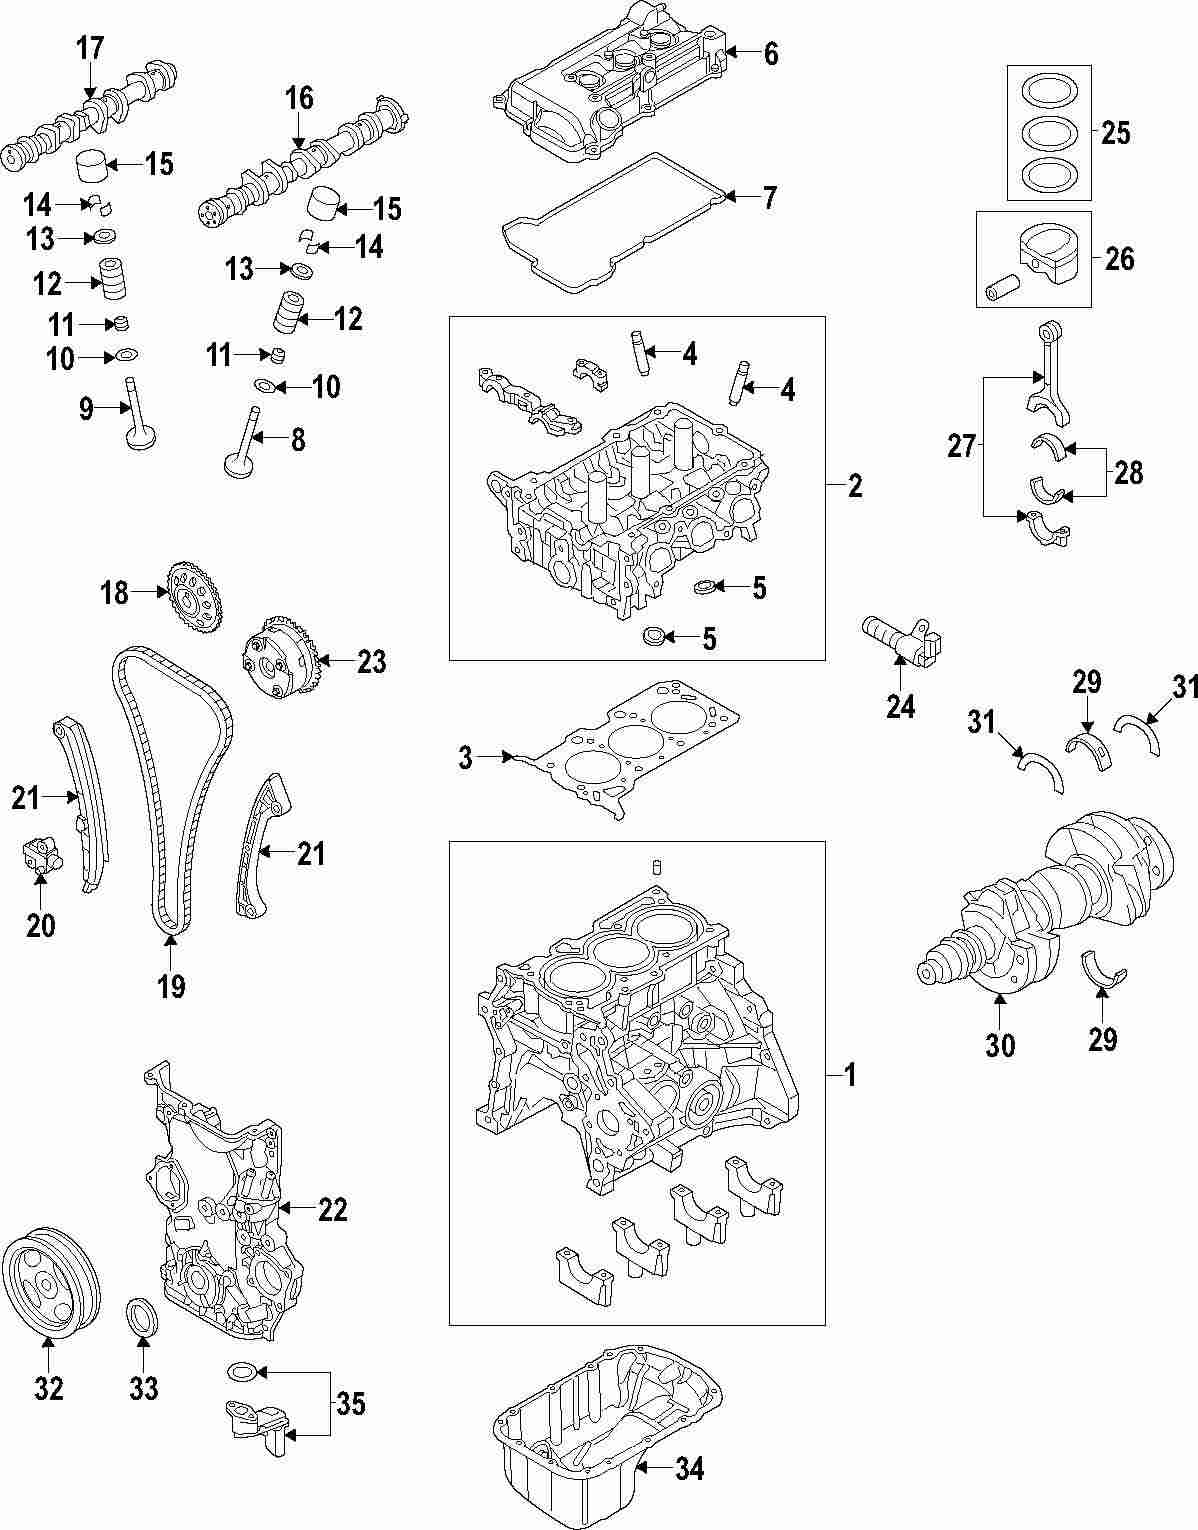 2014 Mitsubishi Mirage Engine Diagram Find Wiring Images Gallery